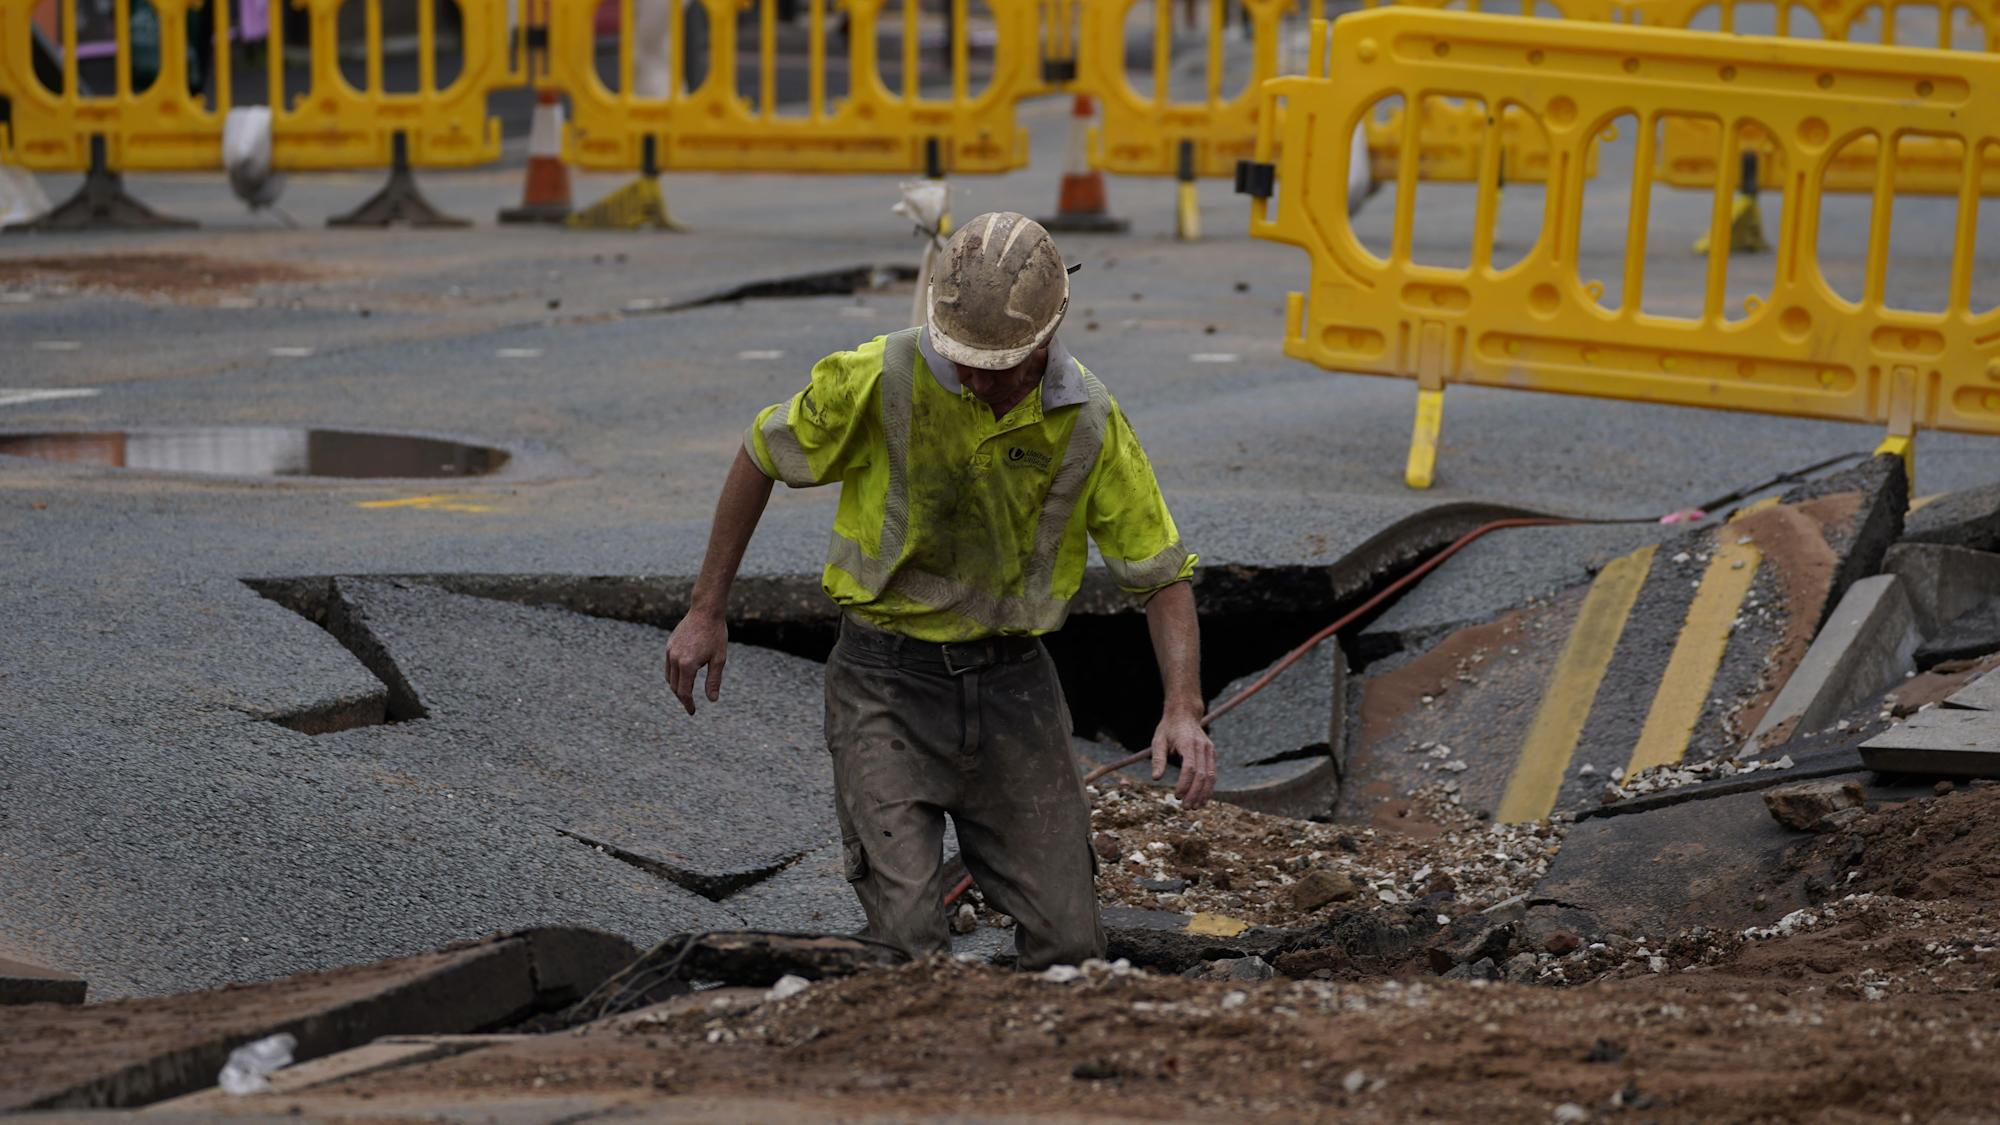 Sinkhole opens up in Liverpool